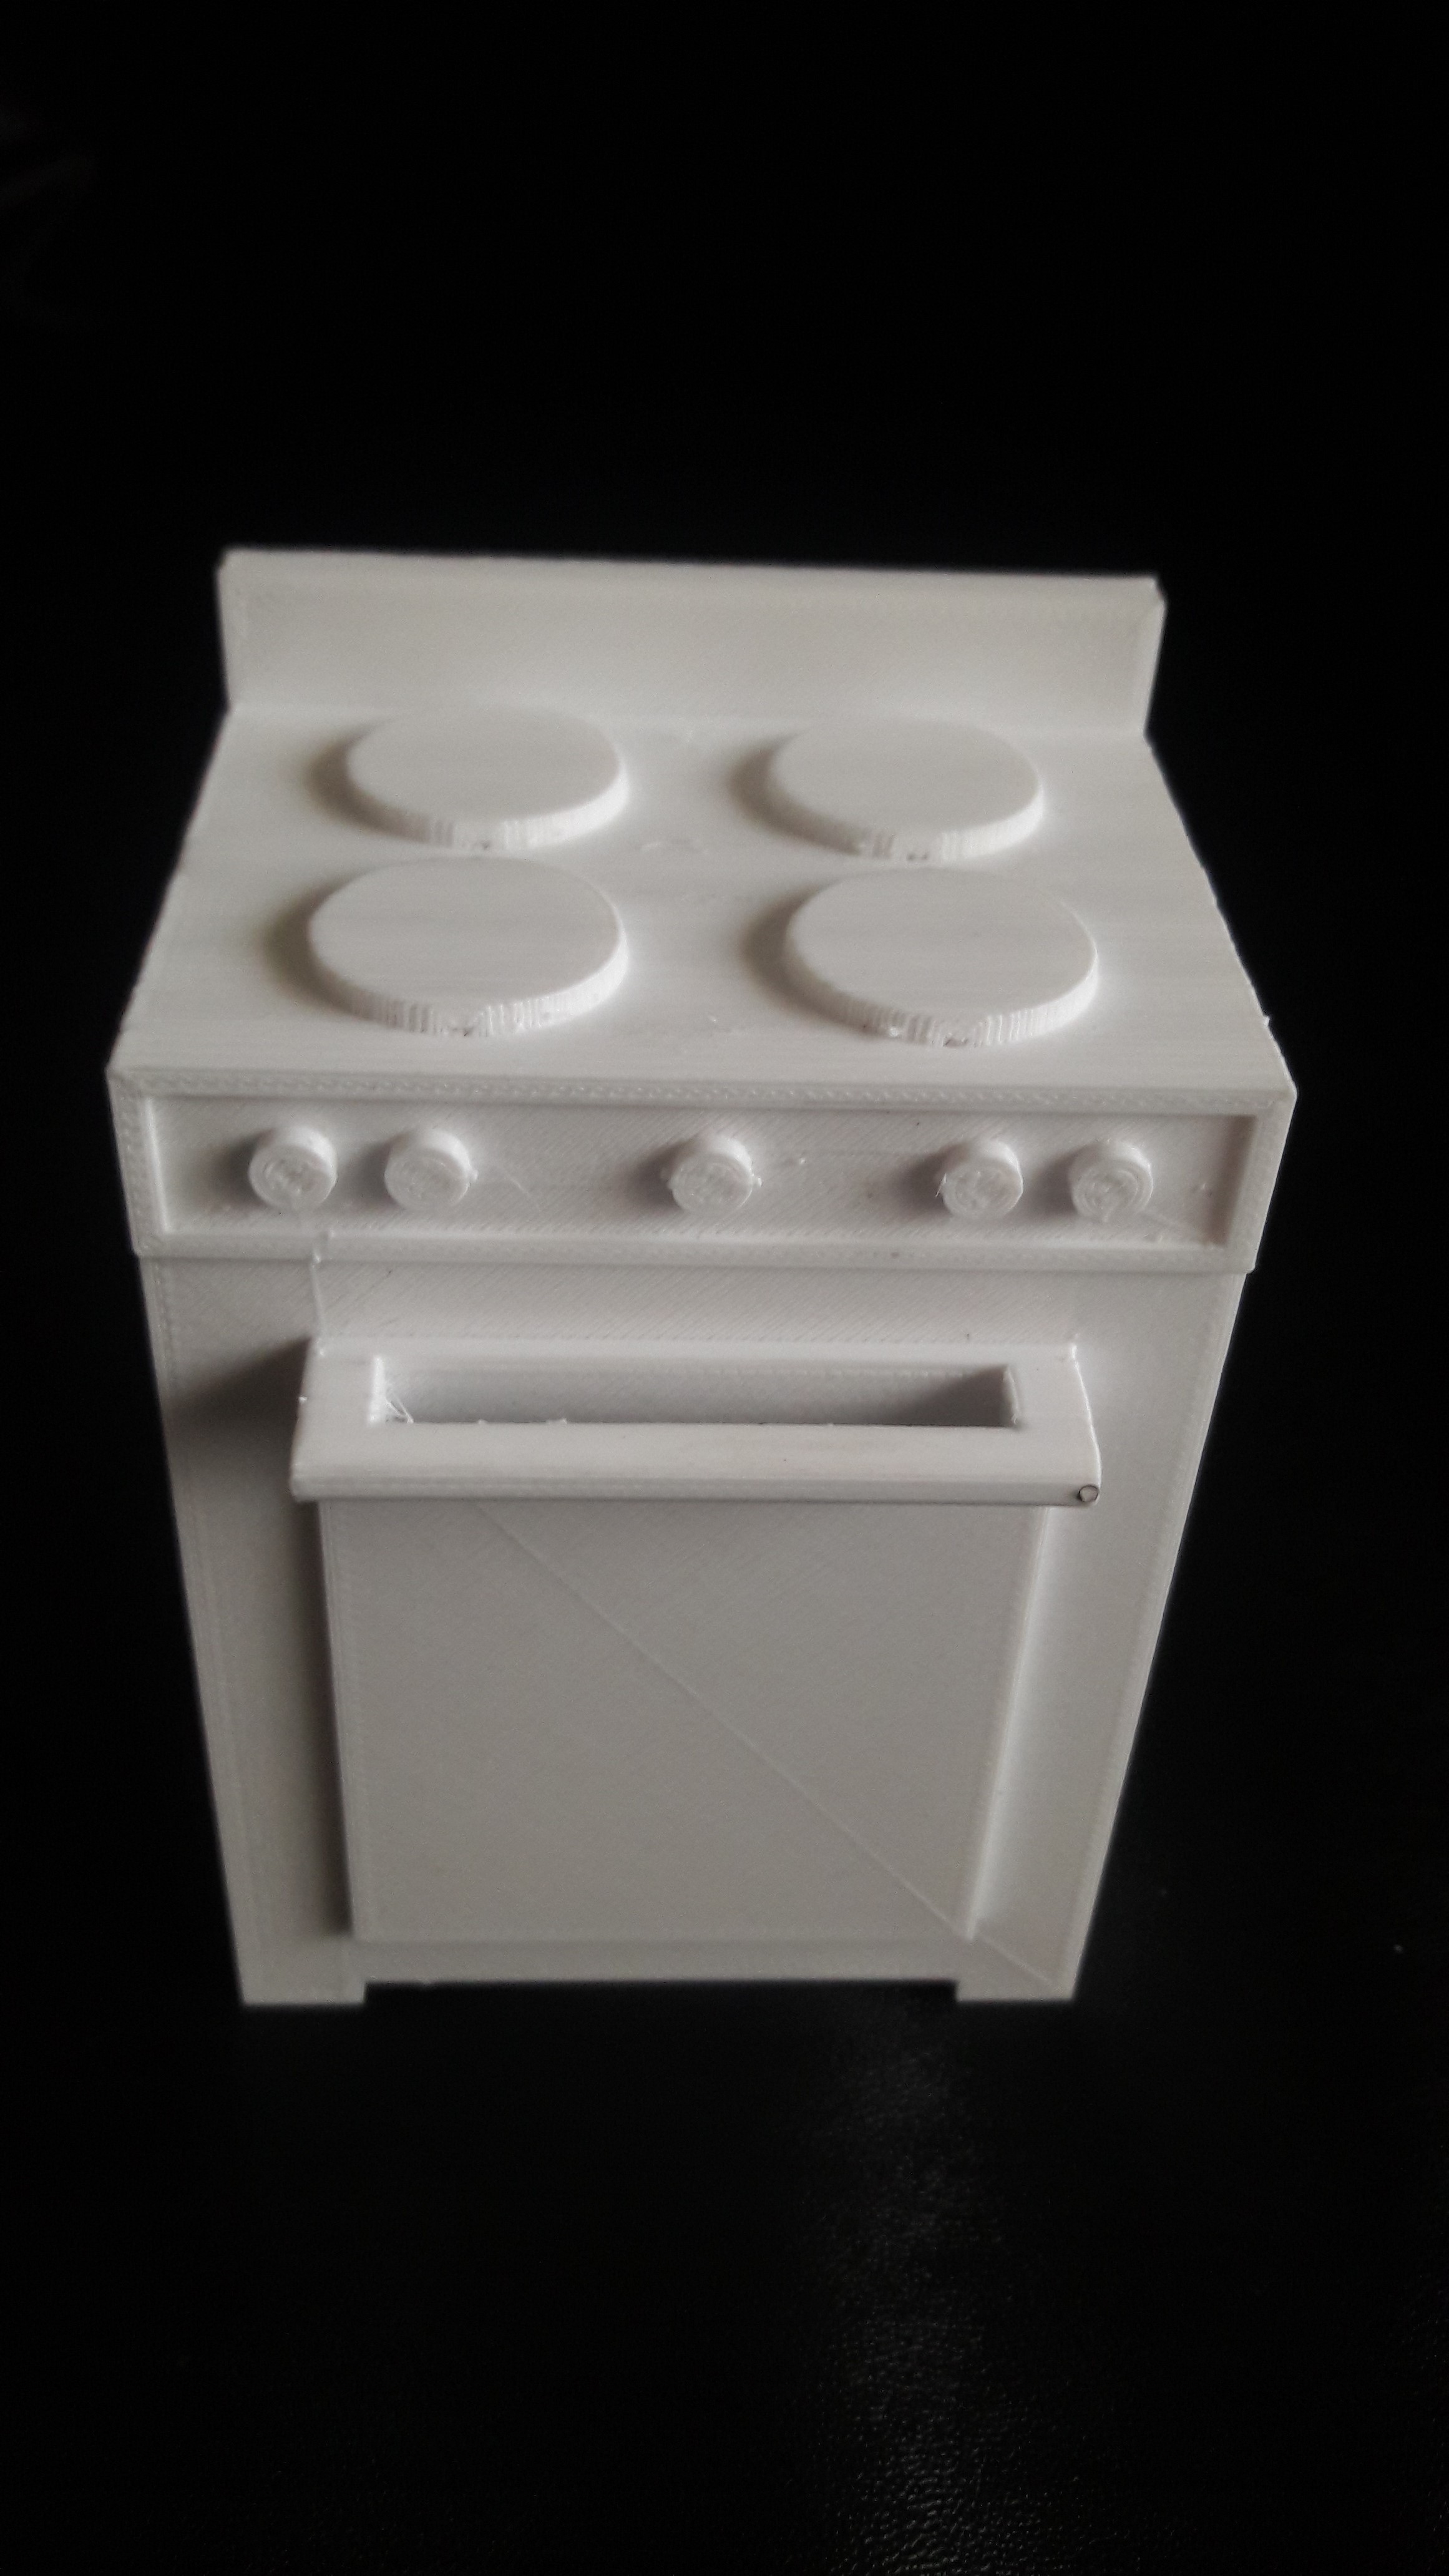 cocina2 (2).jpg Download STL file KITCHEN FOR DOLL'S HOUSE • Template to 3D print, ELBONAERENSE